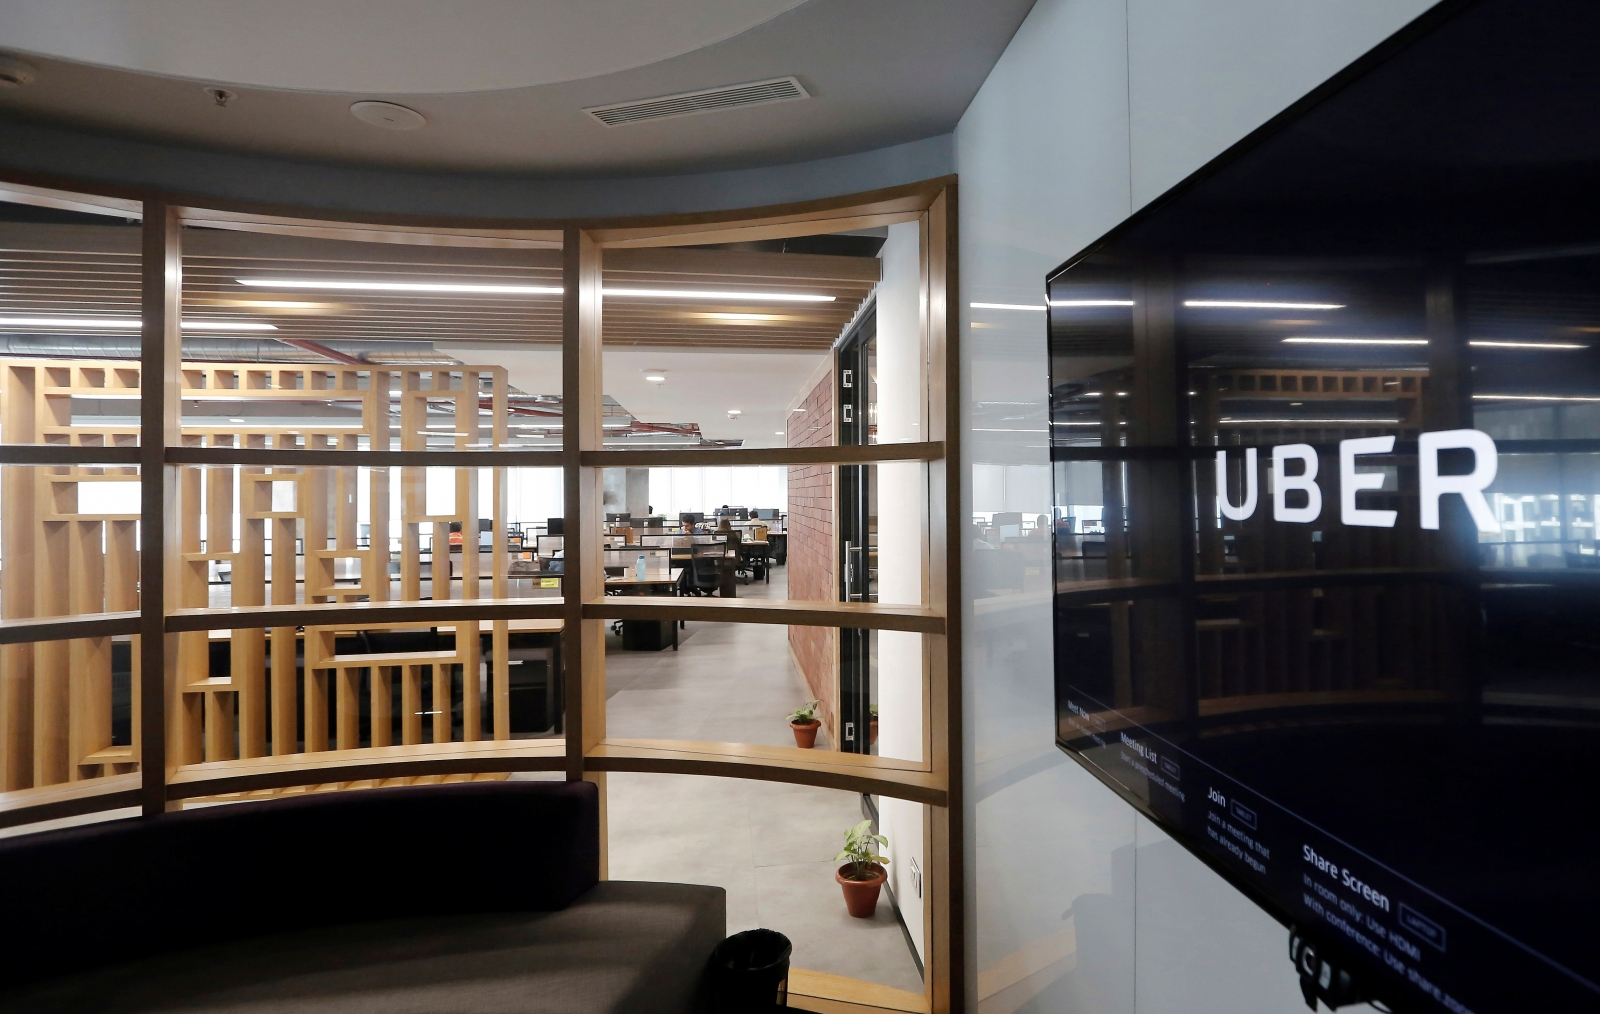 Uber hires new exec to help improve company culture